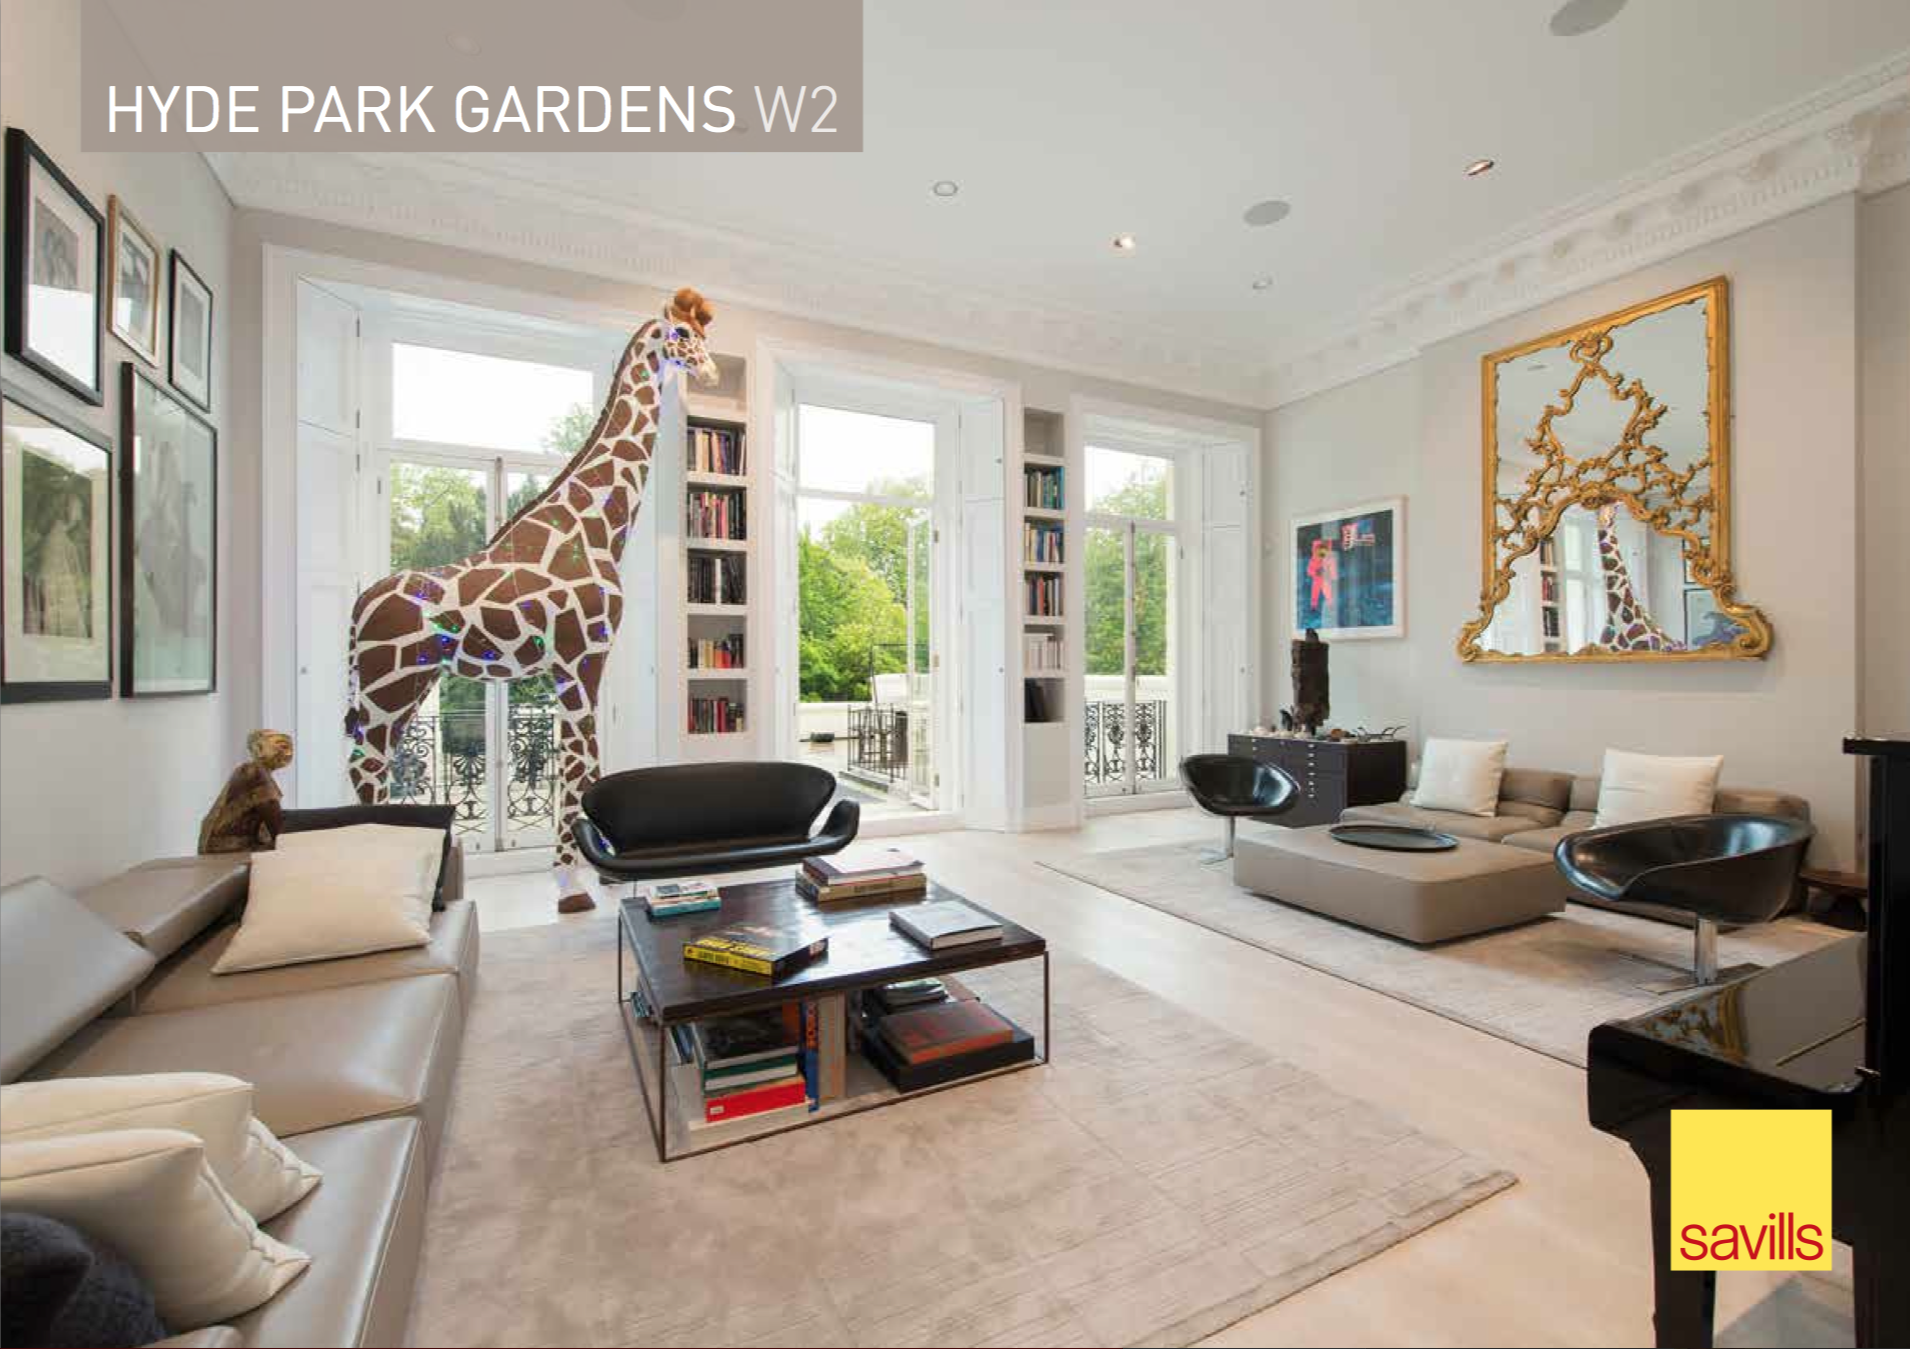 A 4.3 meters high ceiling is the best loved room ofMatilda the family's pet giraffe.